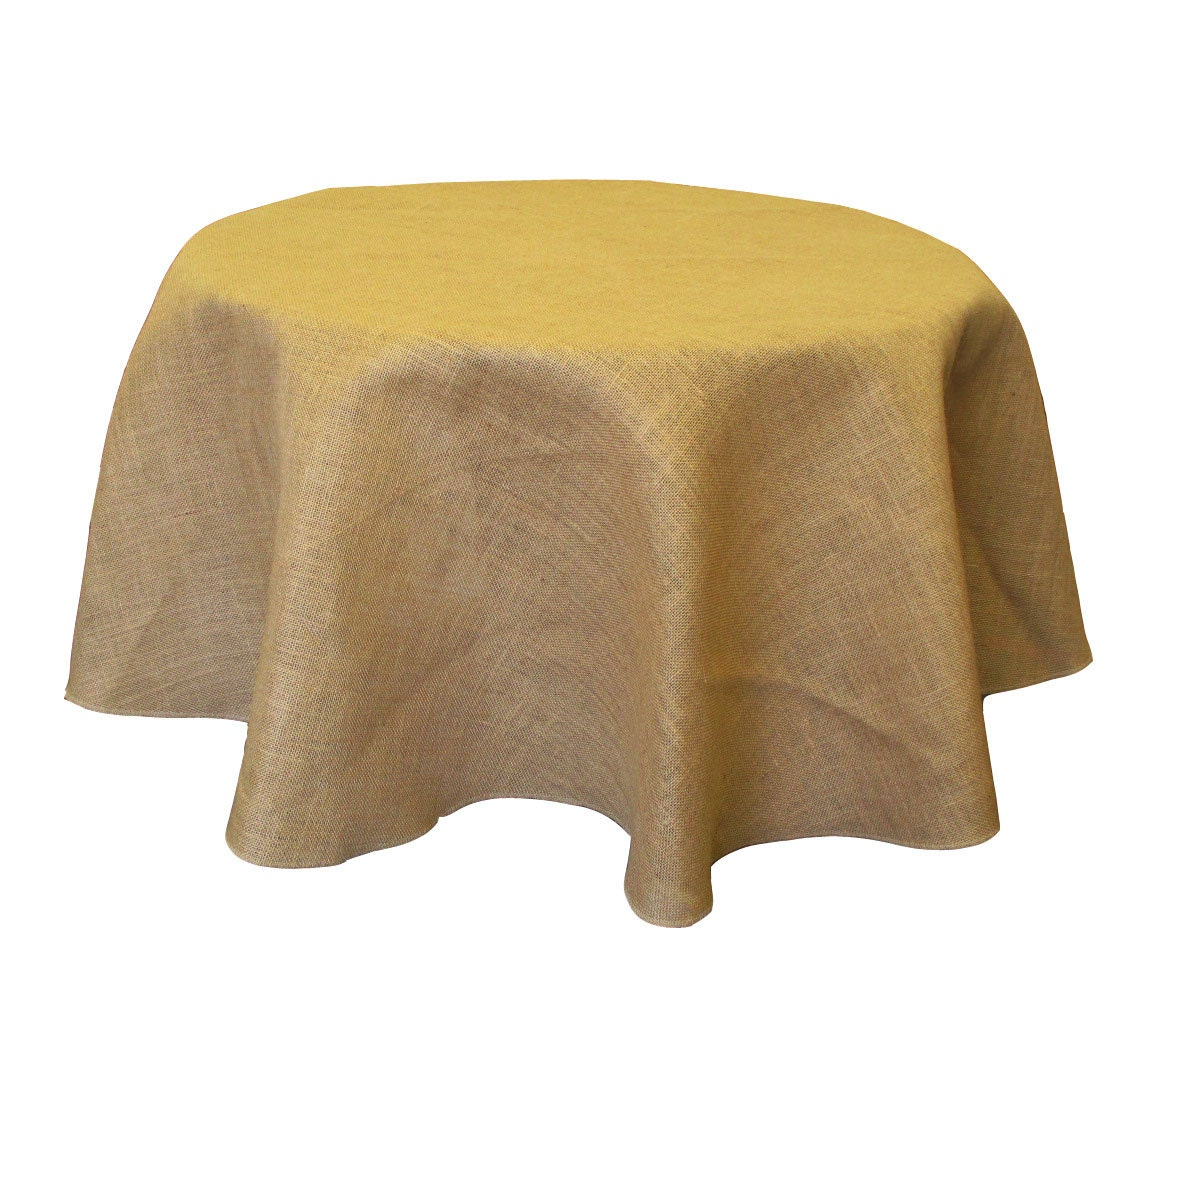 natural burlap tablecloth overlay 58 60 inches round made in. Black Bedroom Furniture Sets. Home Design Ideas